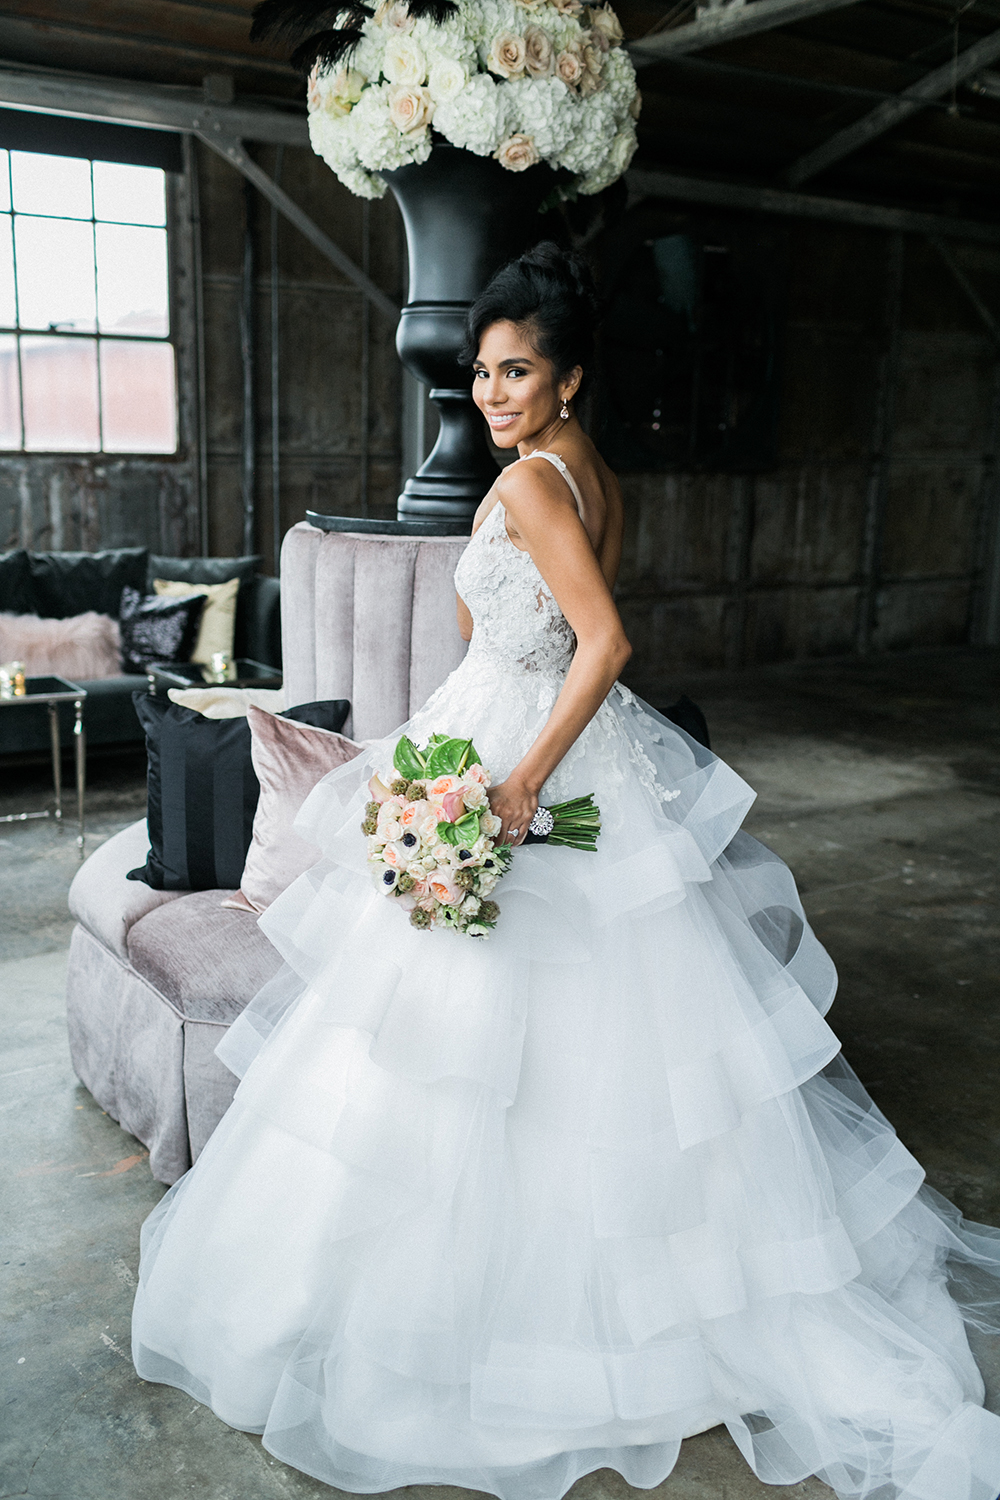 layered wedding dress - photo by Alexis June Weddings http://ruffledblog.com/industrial-glam-wedding-inspiration